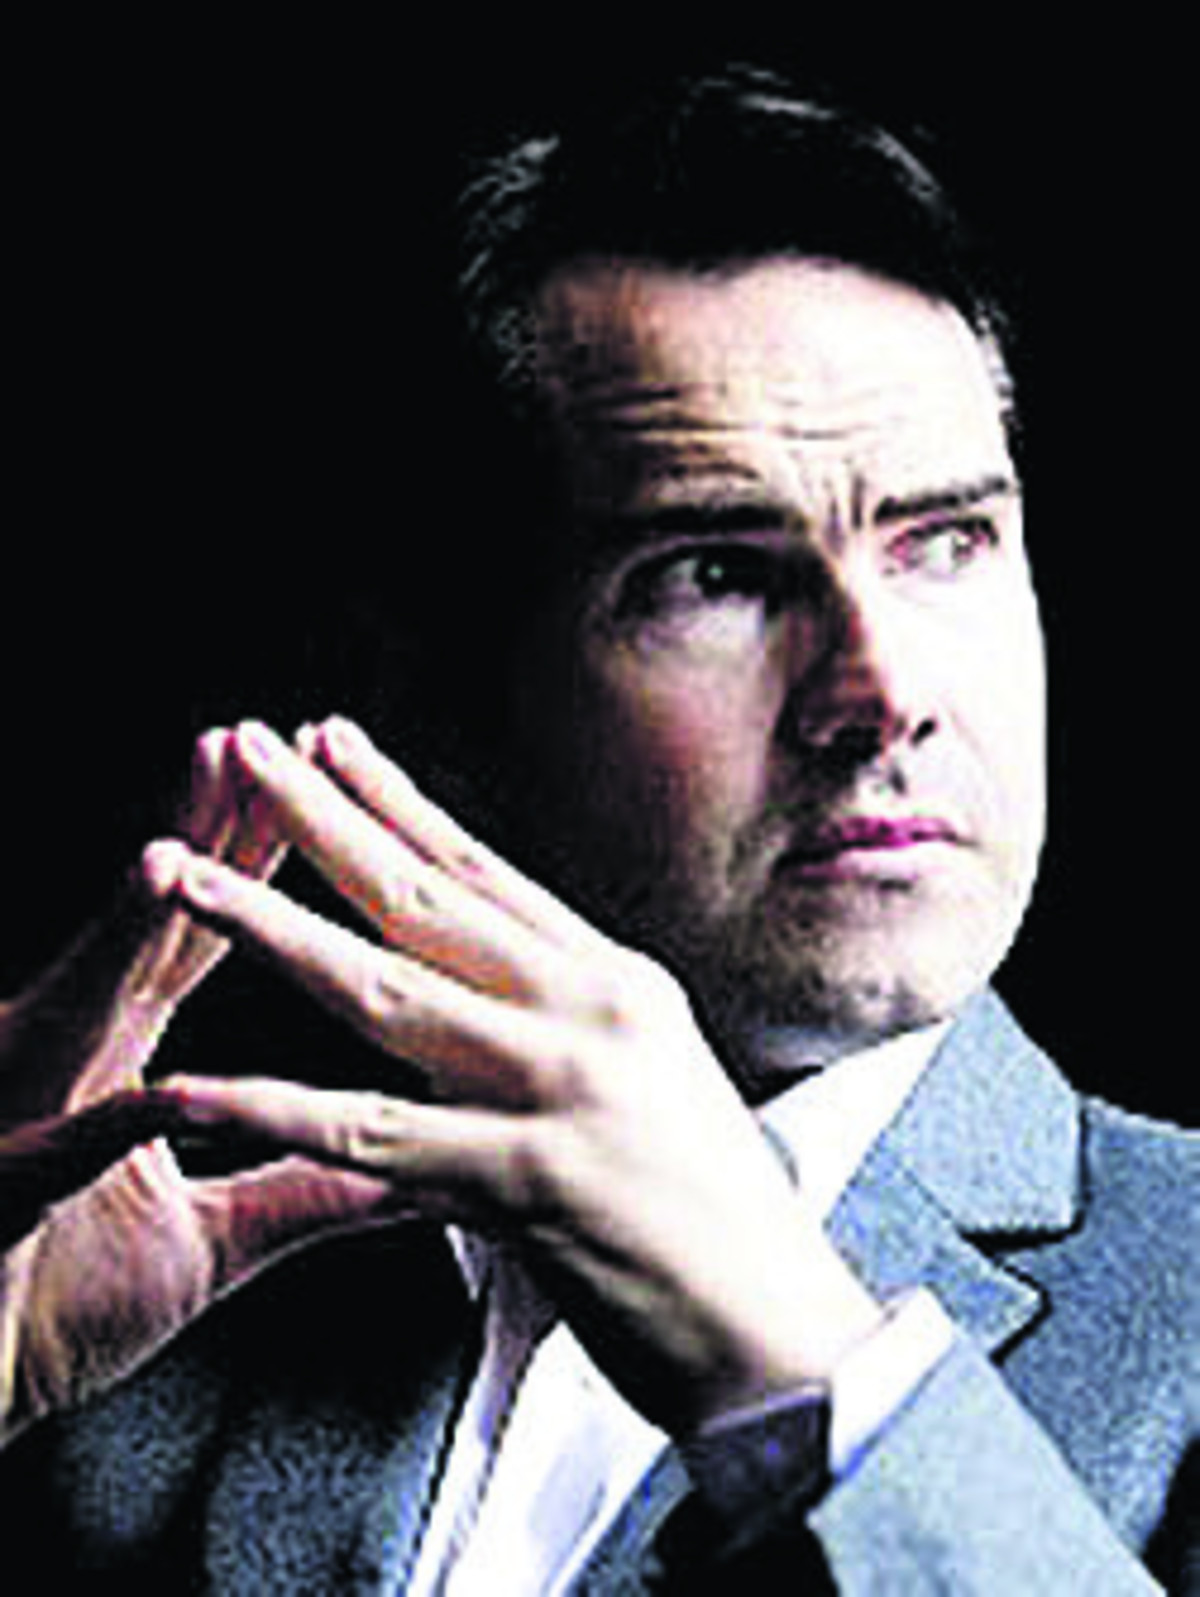 Jimmy Carr and Rob Brydon among stars to join forces for last Childish Things fundraiser + Video